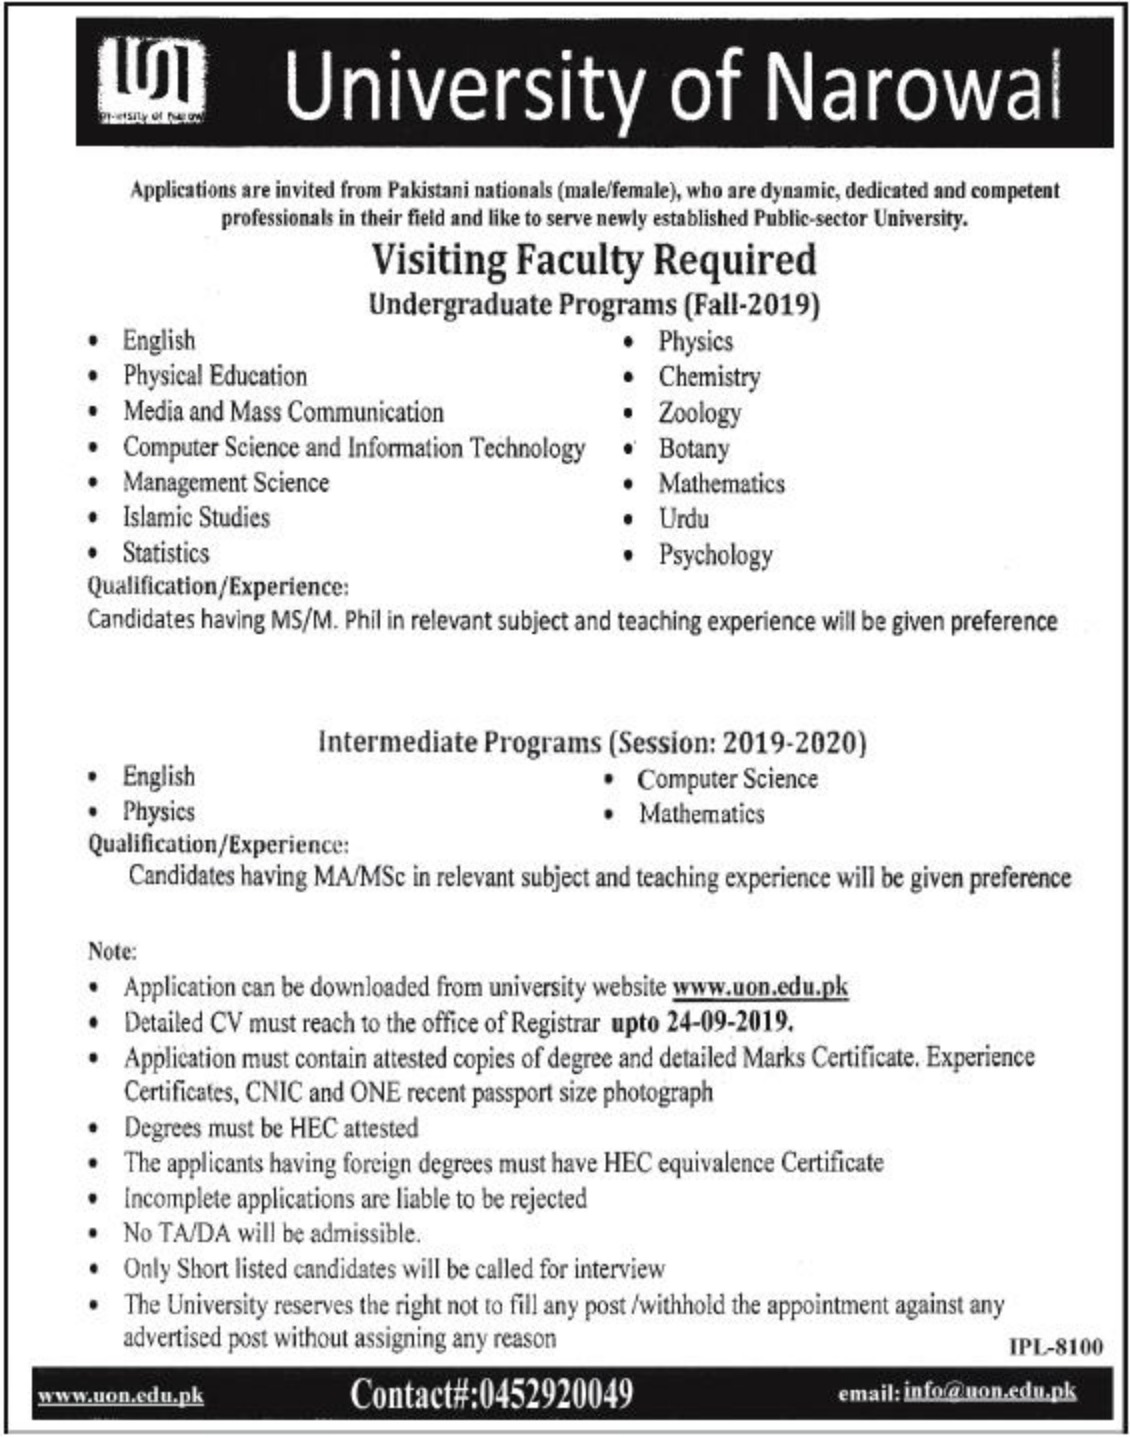 University of Narowal Undergraduate Intermediate Programs Jobs